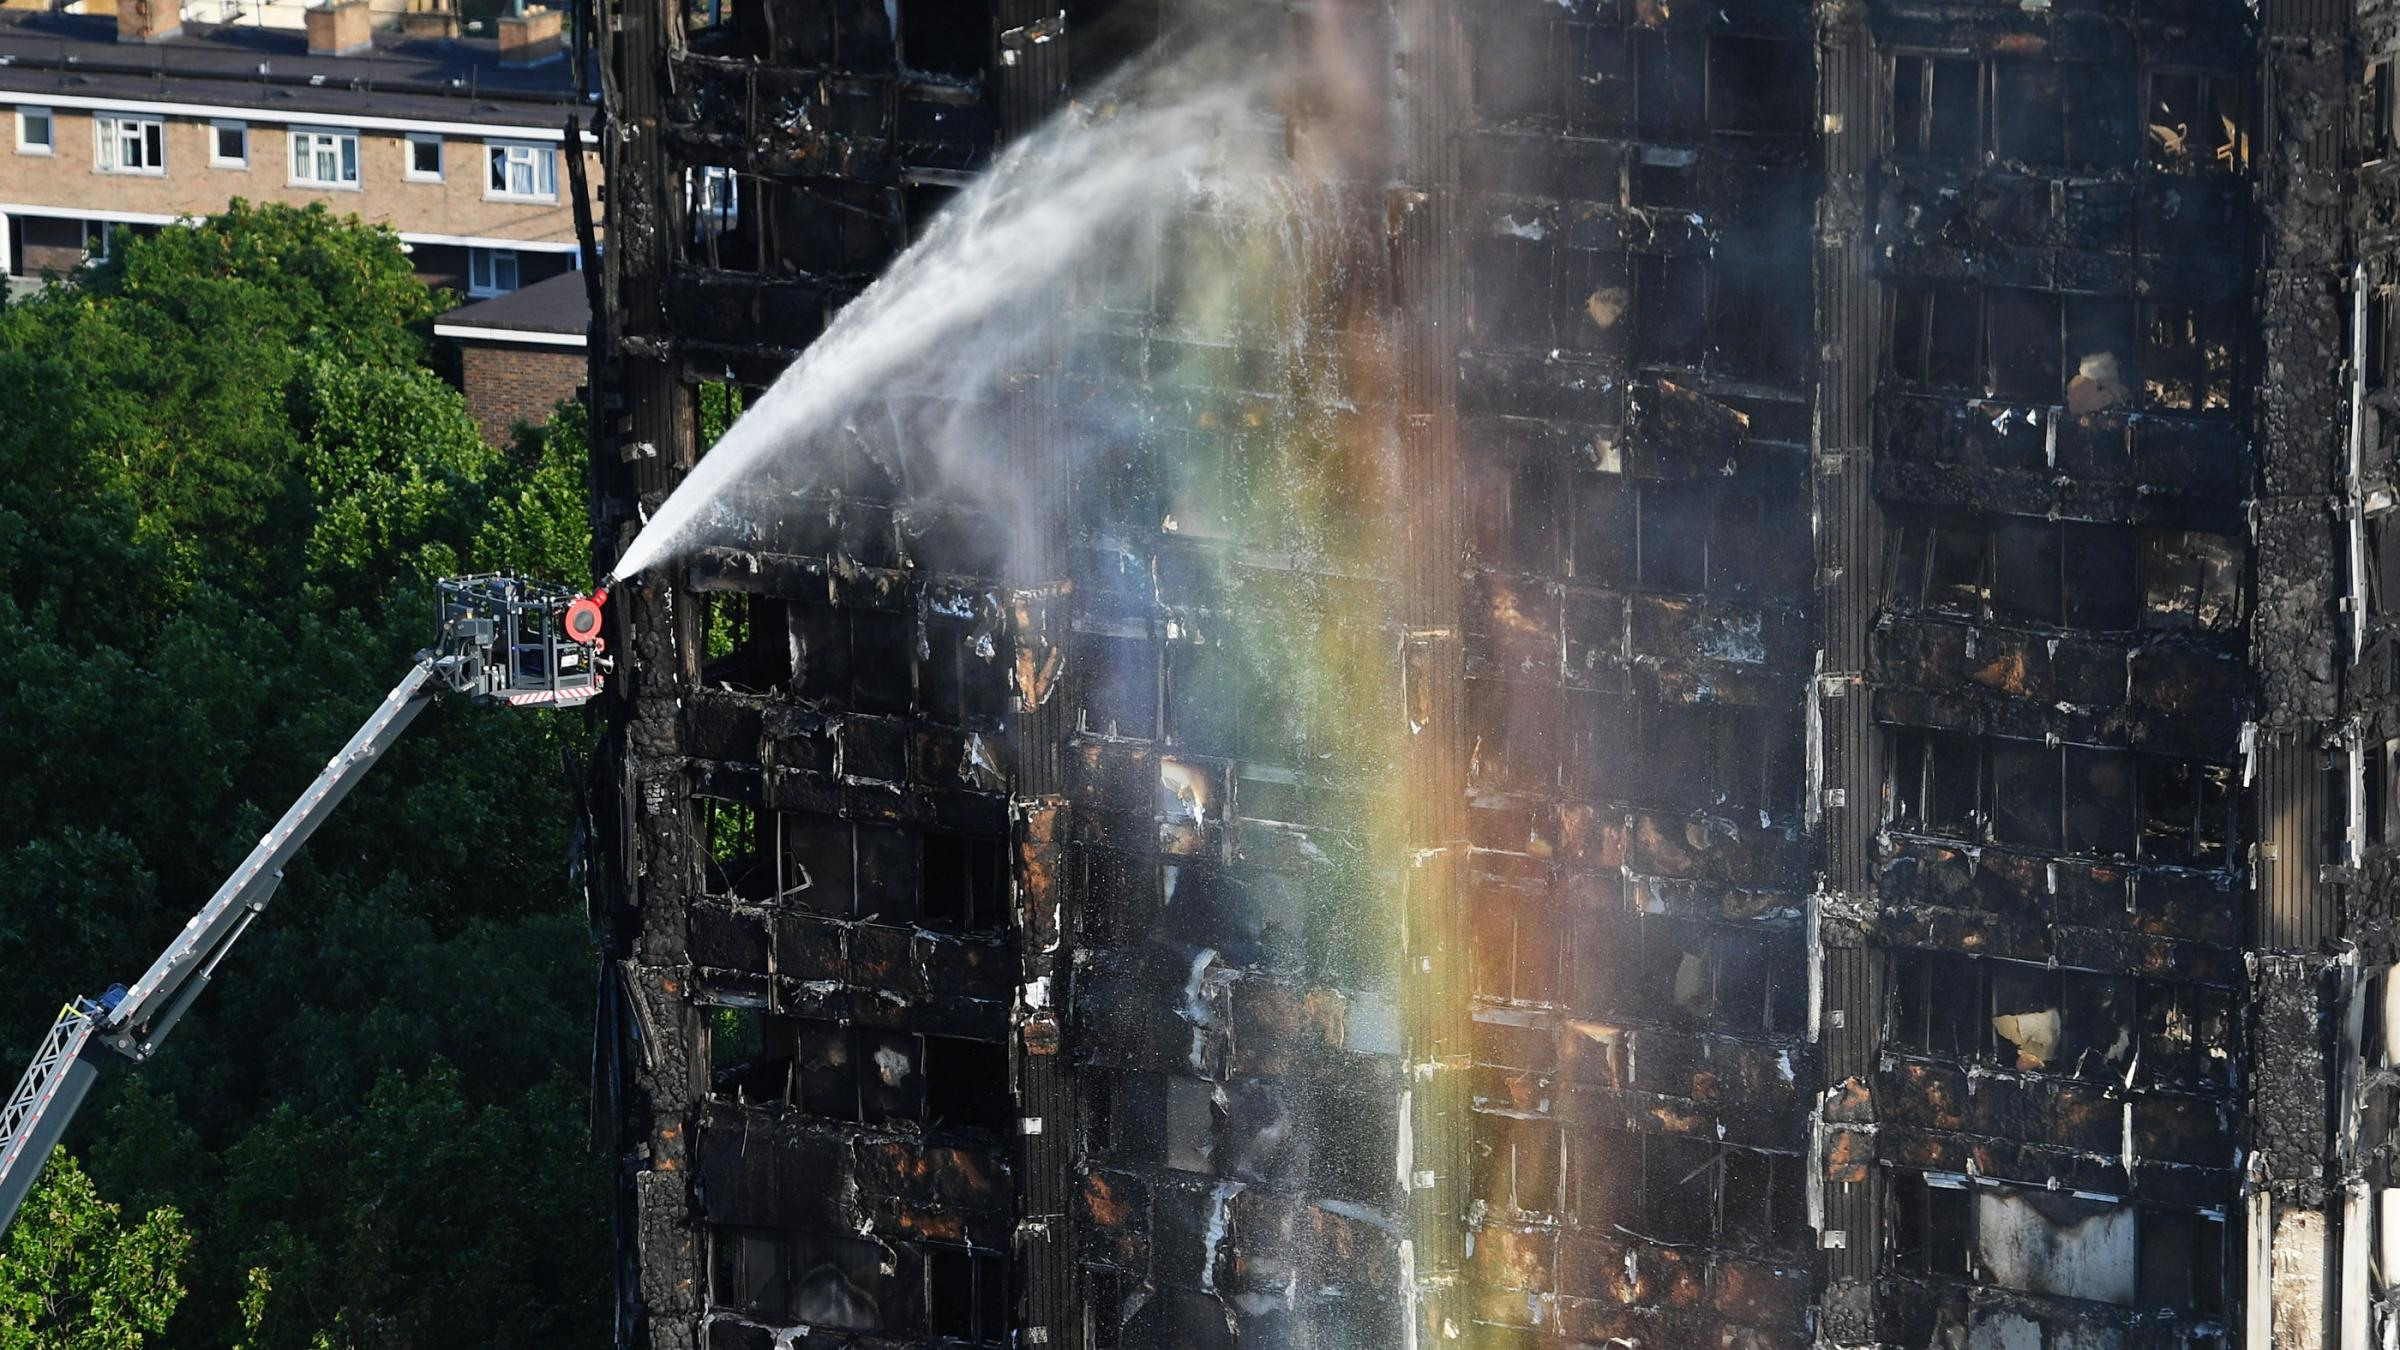 At least 17 dead in London tower block fire